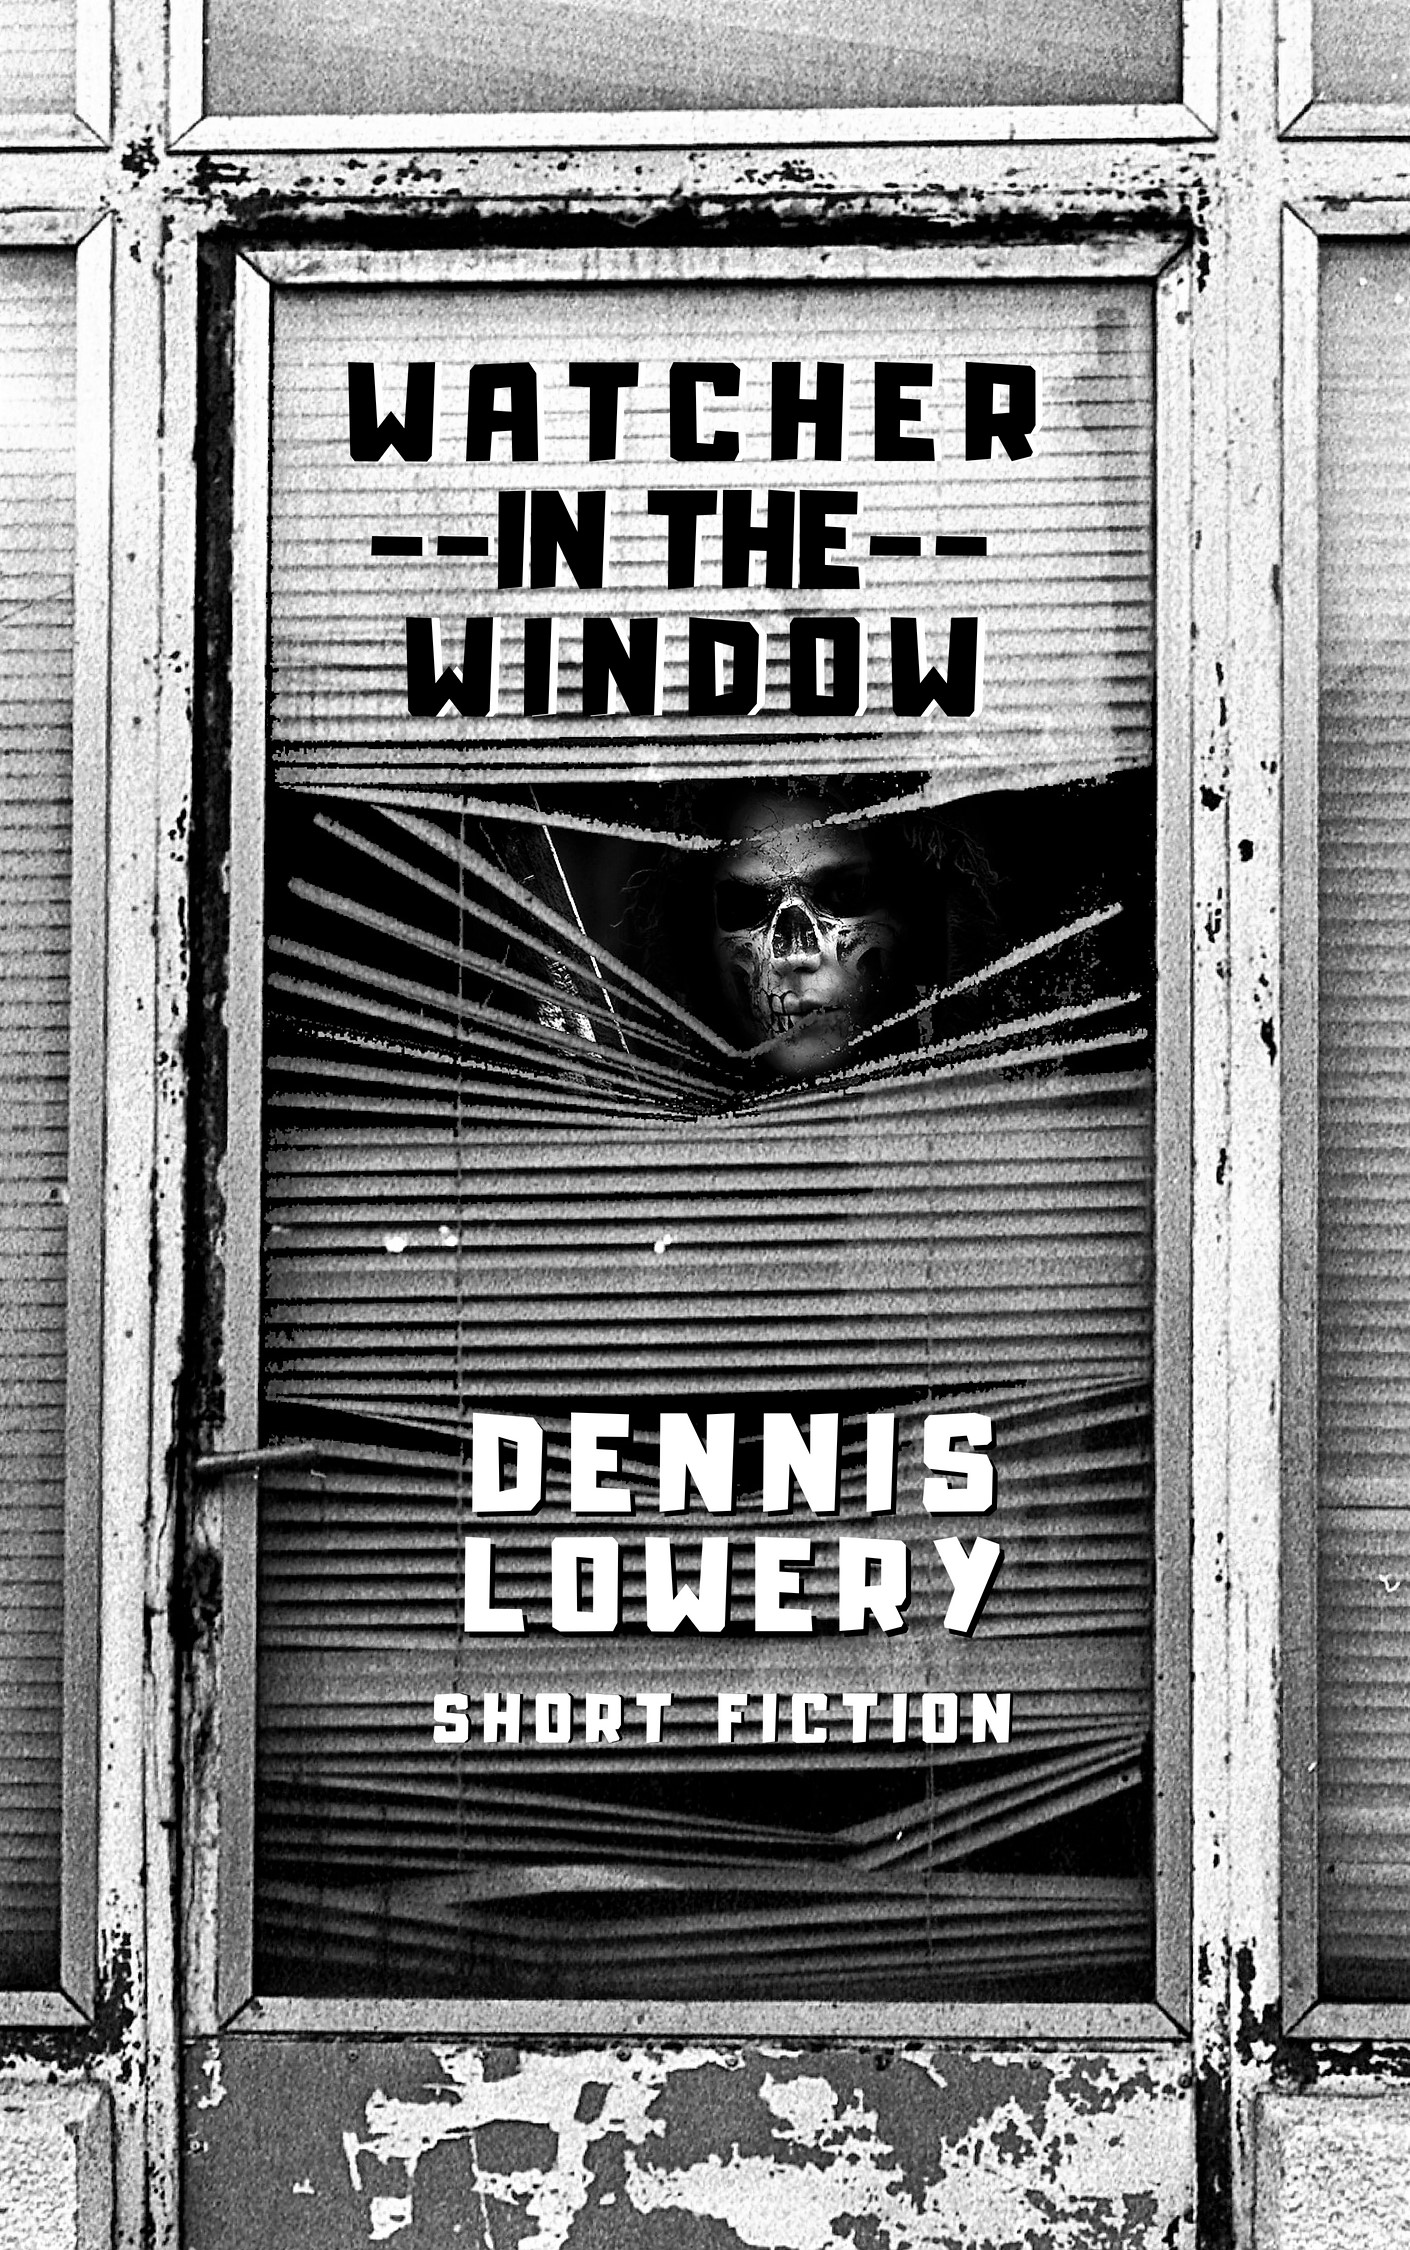 WATCHER IN THE WINDOW - Flashfiction by Dennis Lowery